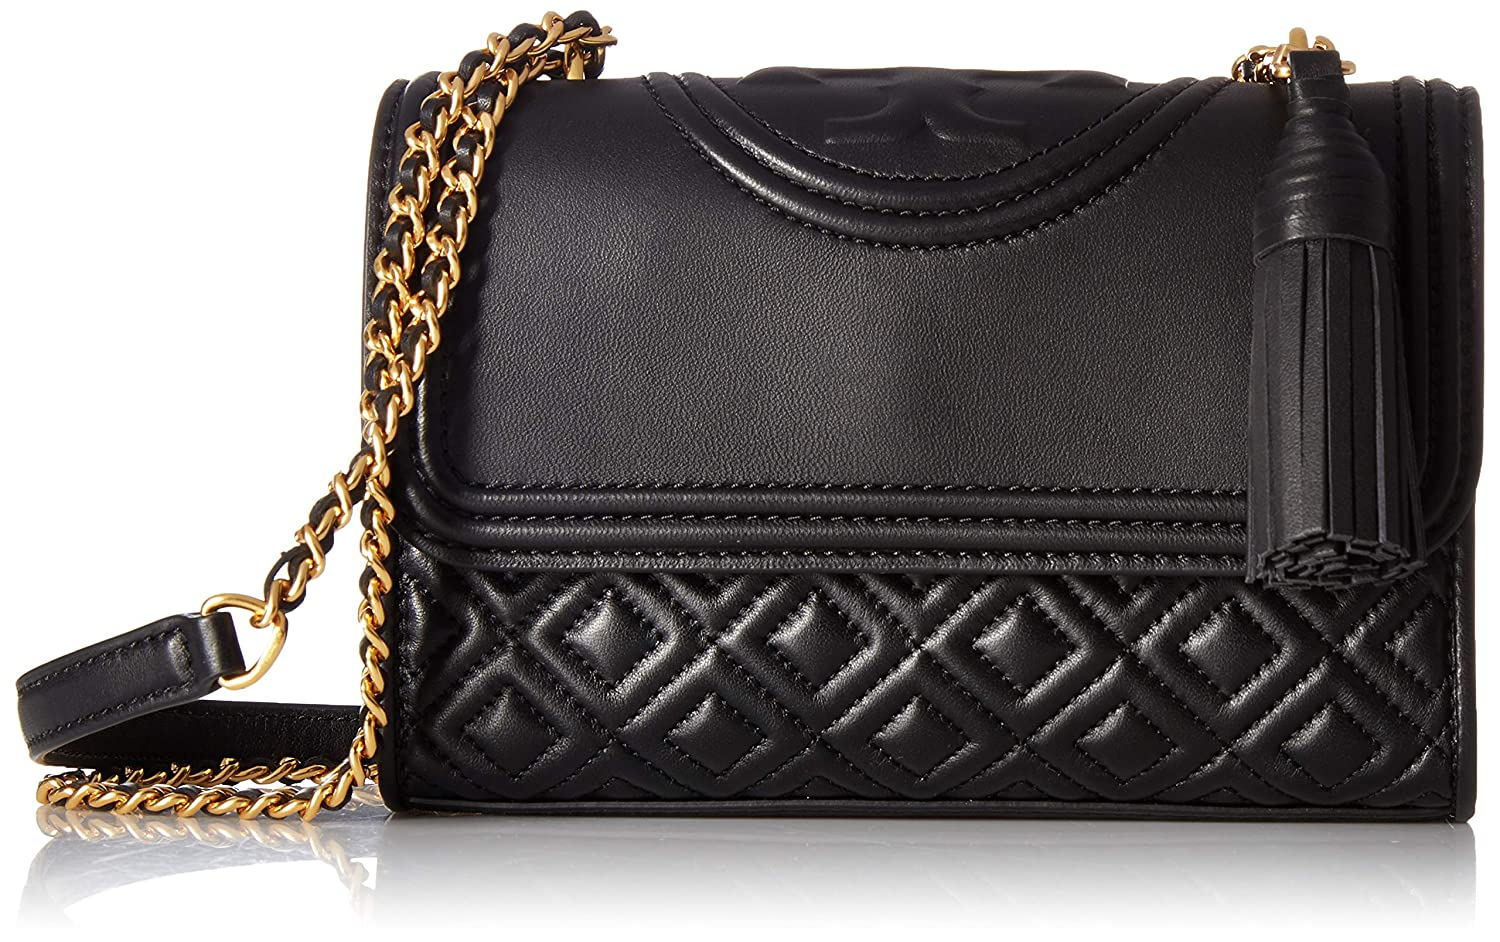 eff89dcfa03 Tory Burch Women's Fleming Small Convertible Shoulder Bag, Black, One Size:  Handbags: Amazon.com